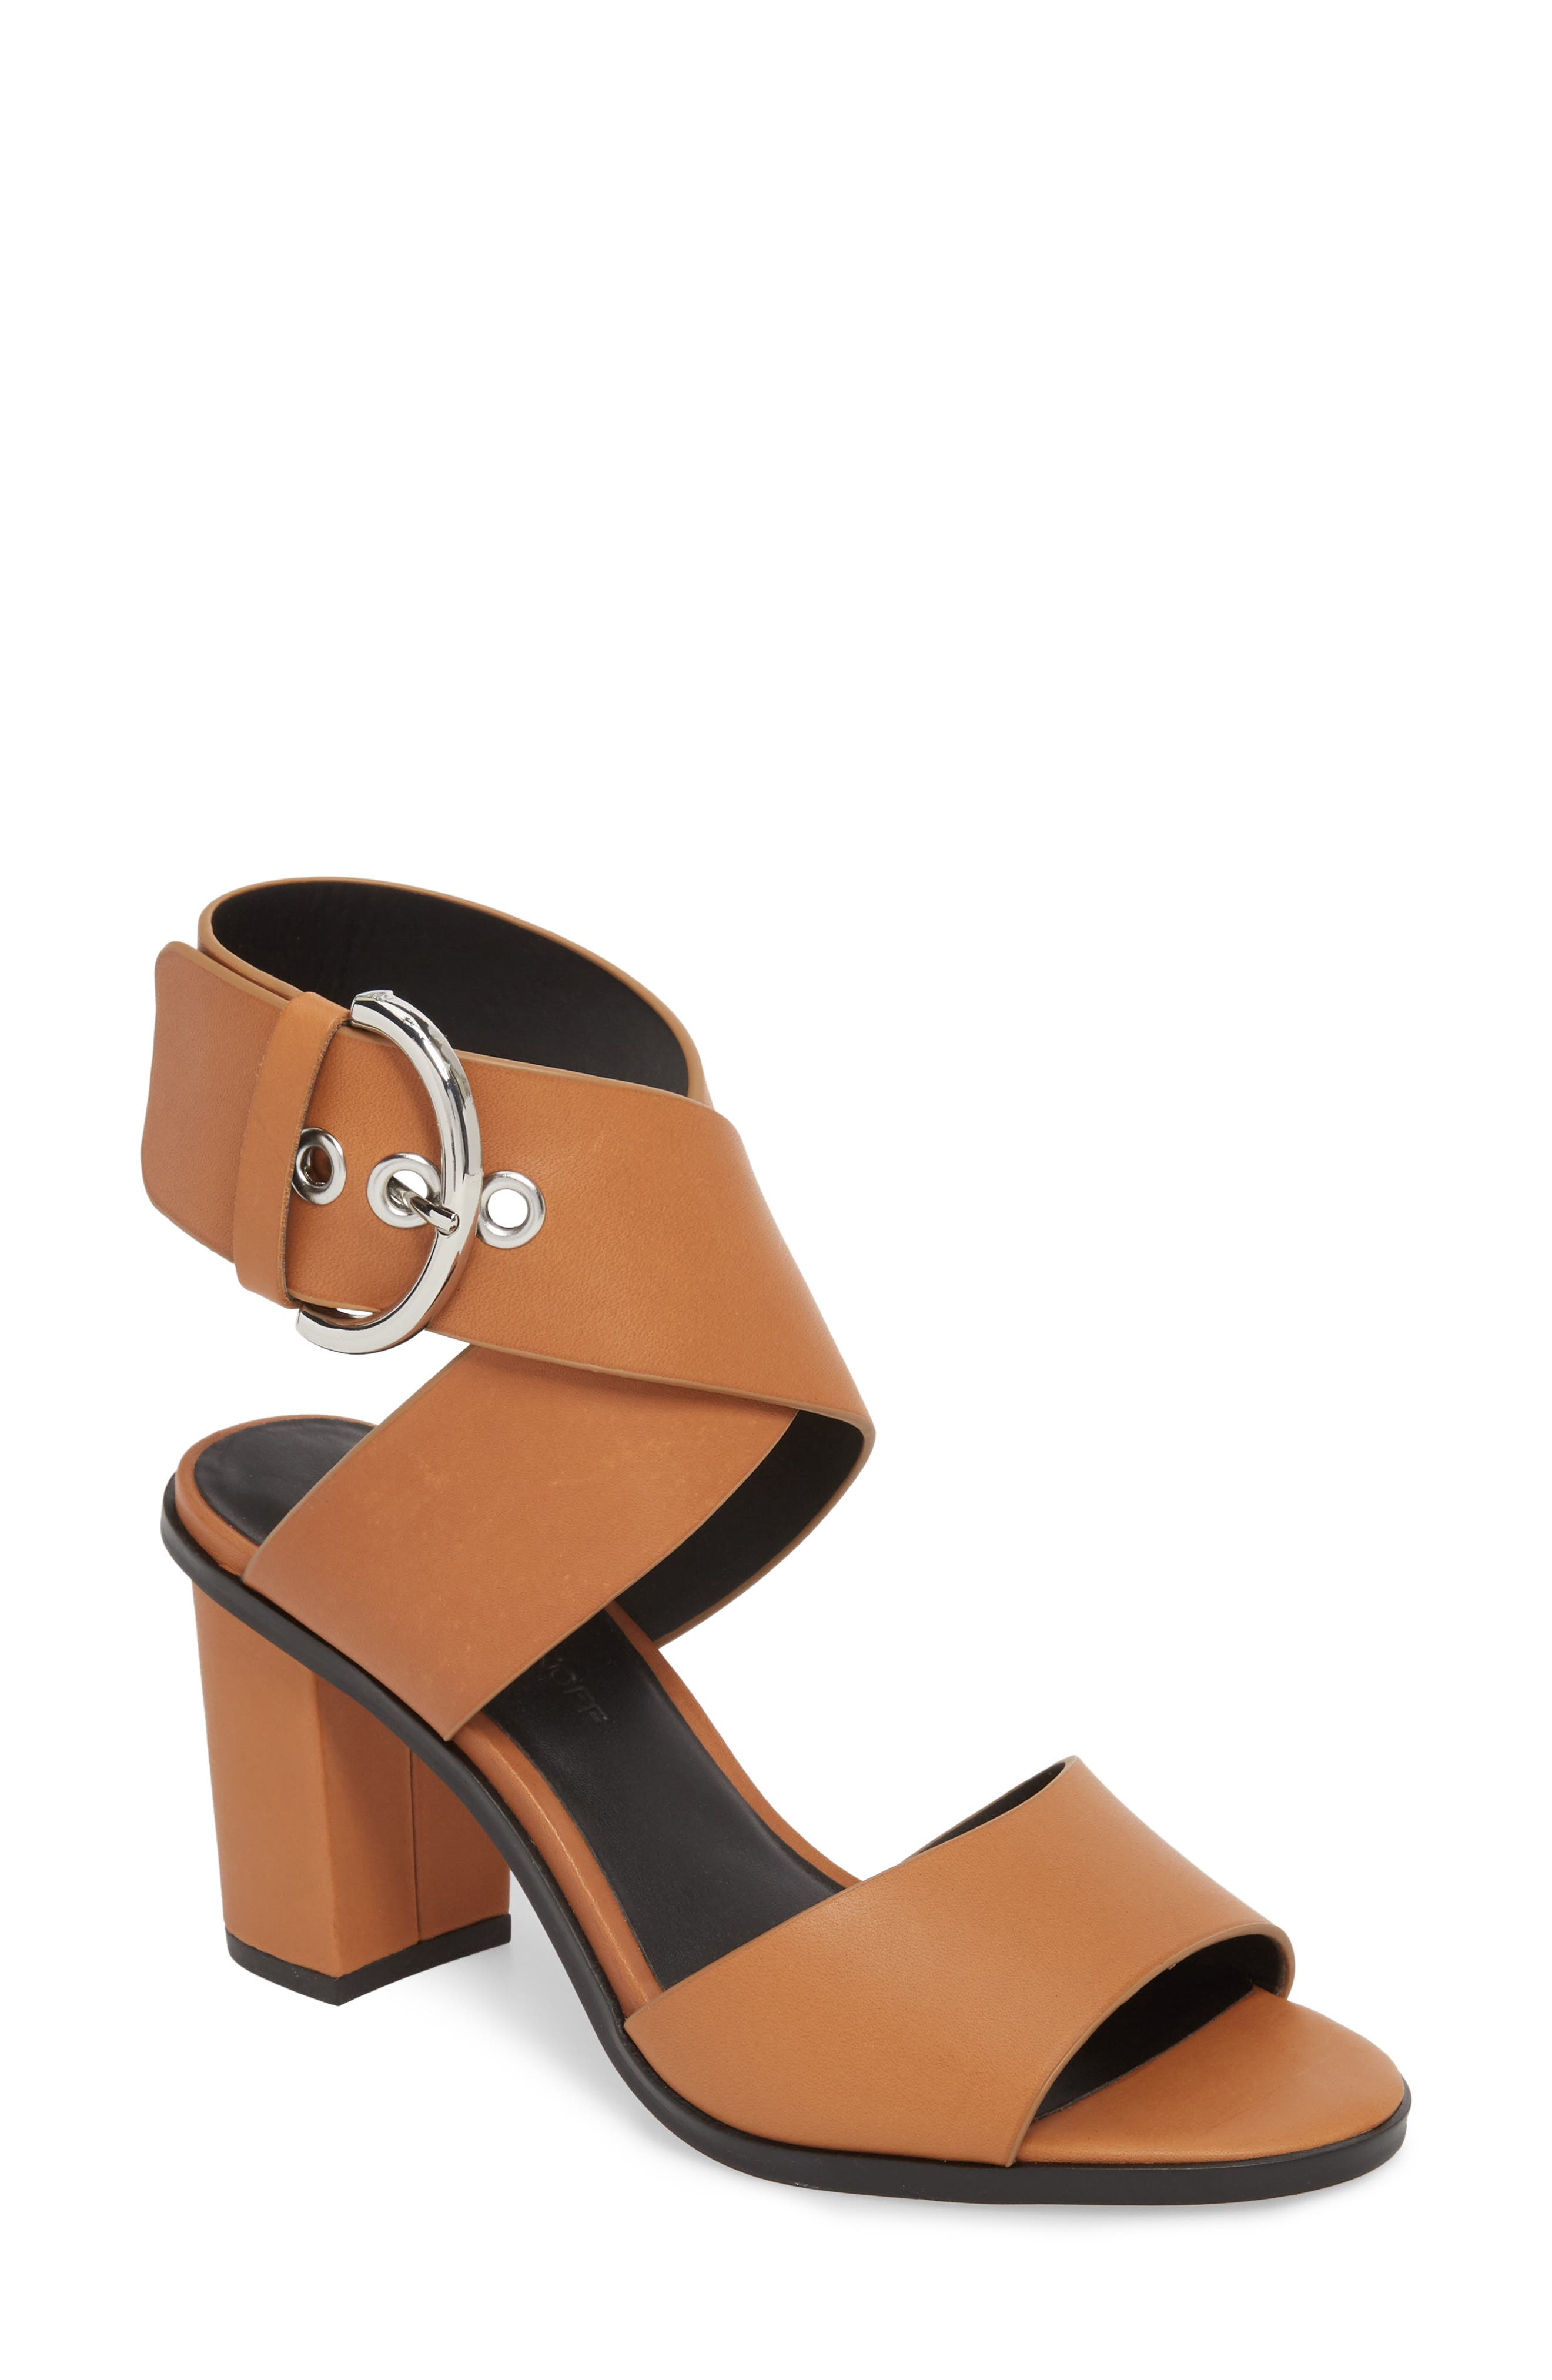 Valaree Sandal,                         Main,                         color, ALMOND LEATHER